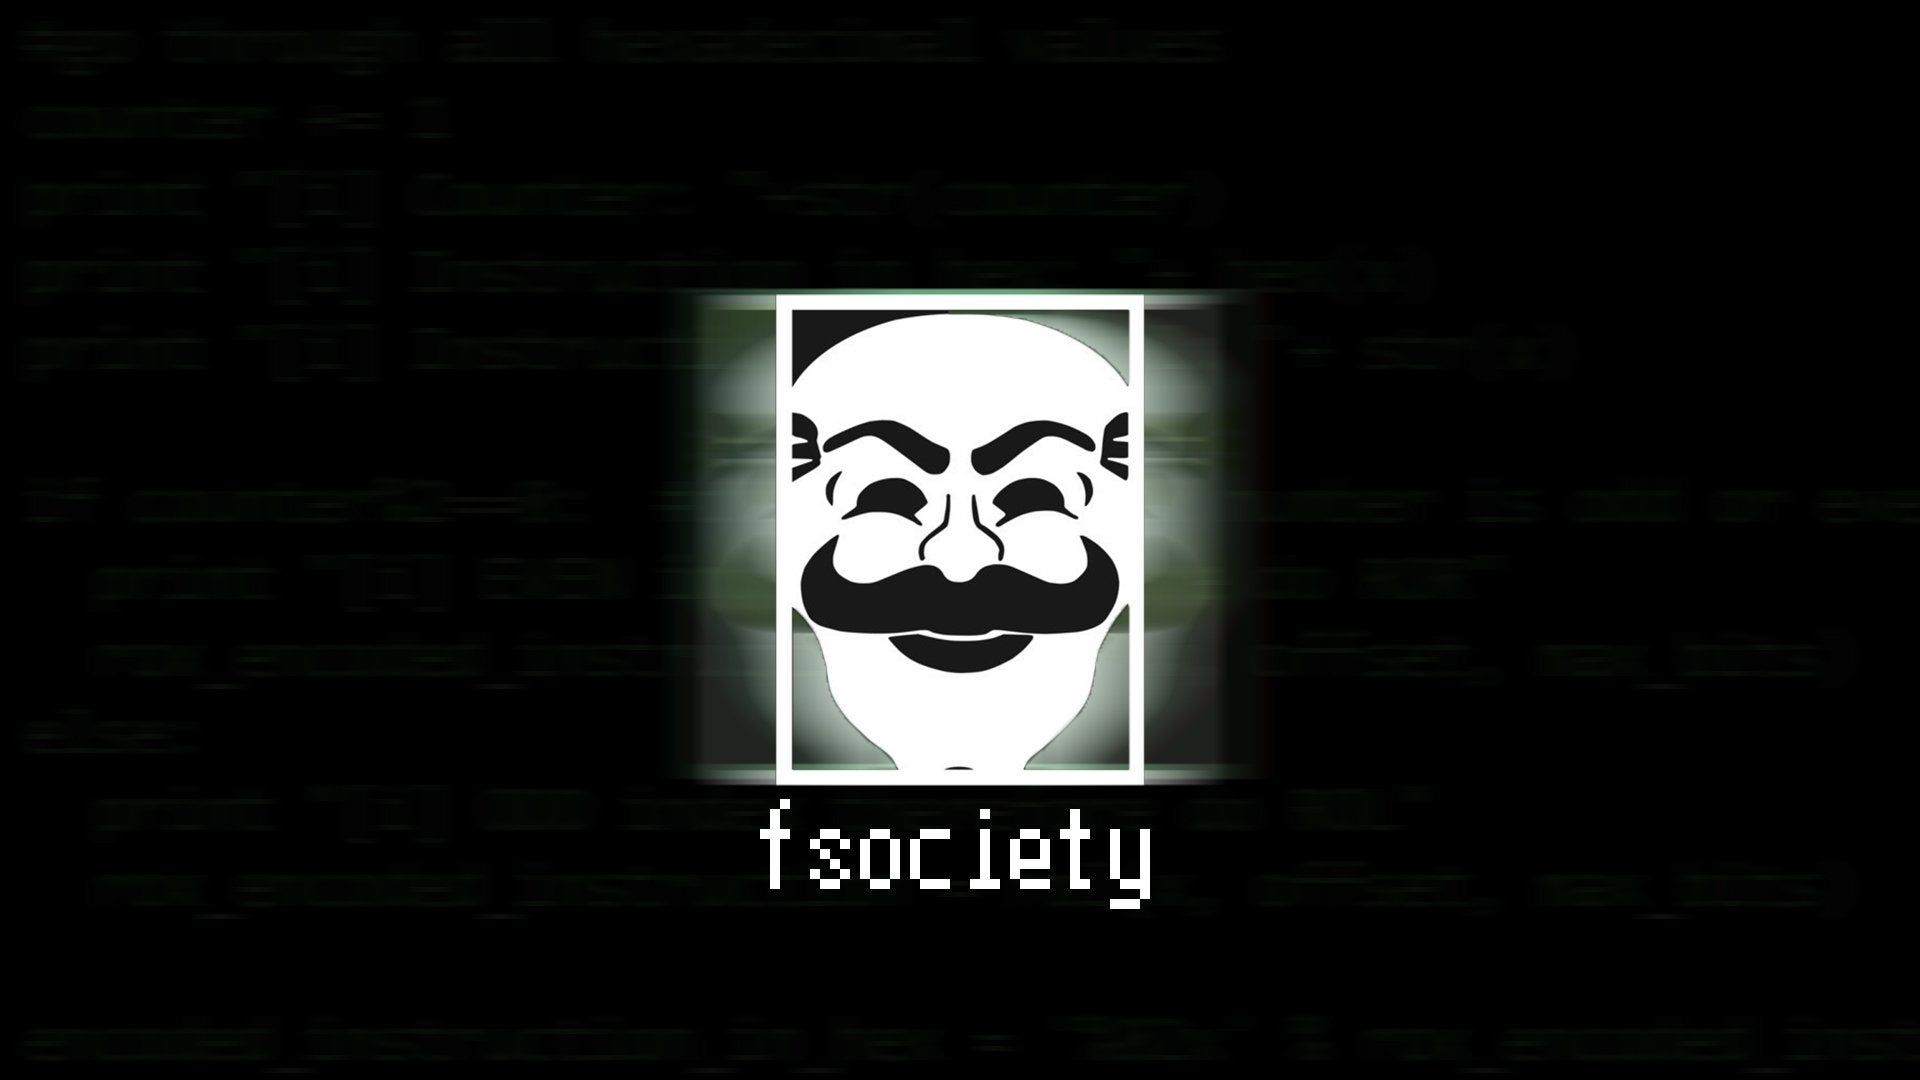 Fsociety Wallpapers Top Free Fsociety Backgrounds Wallpaperaccess